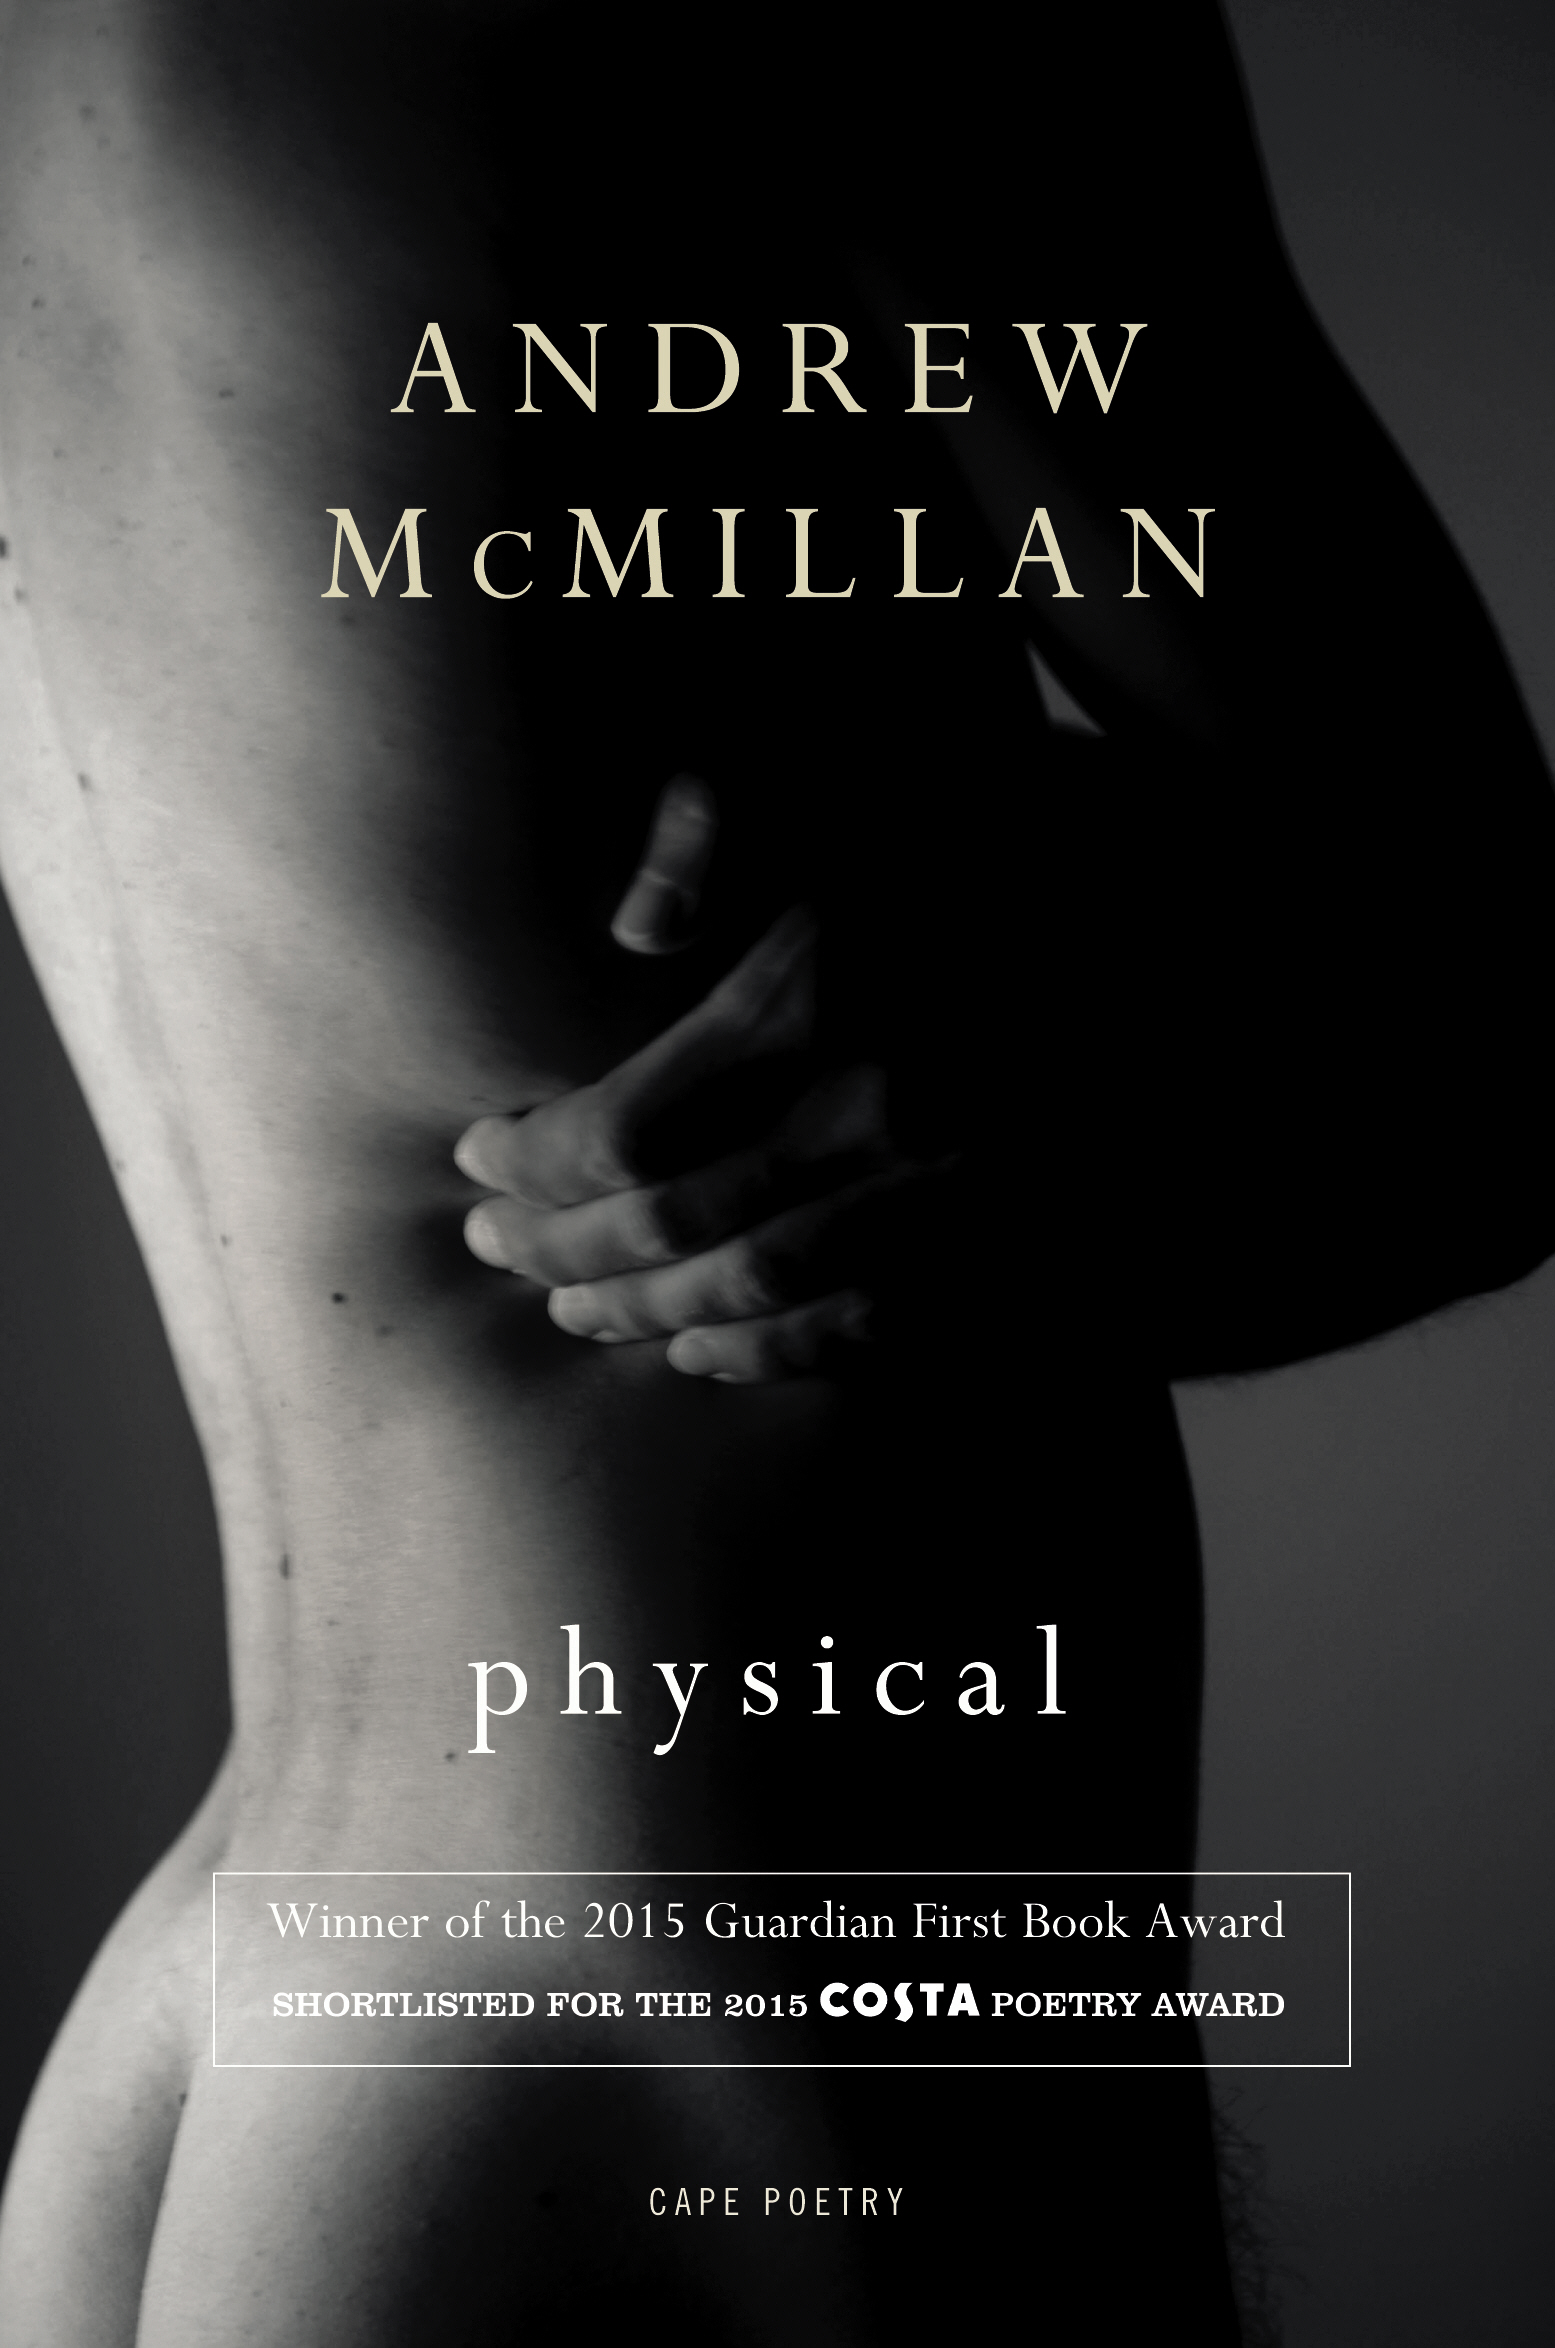 Physical by Andrew McMillan is published by Jonathan Cape